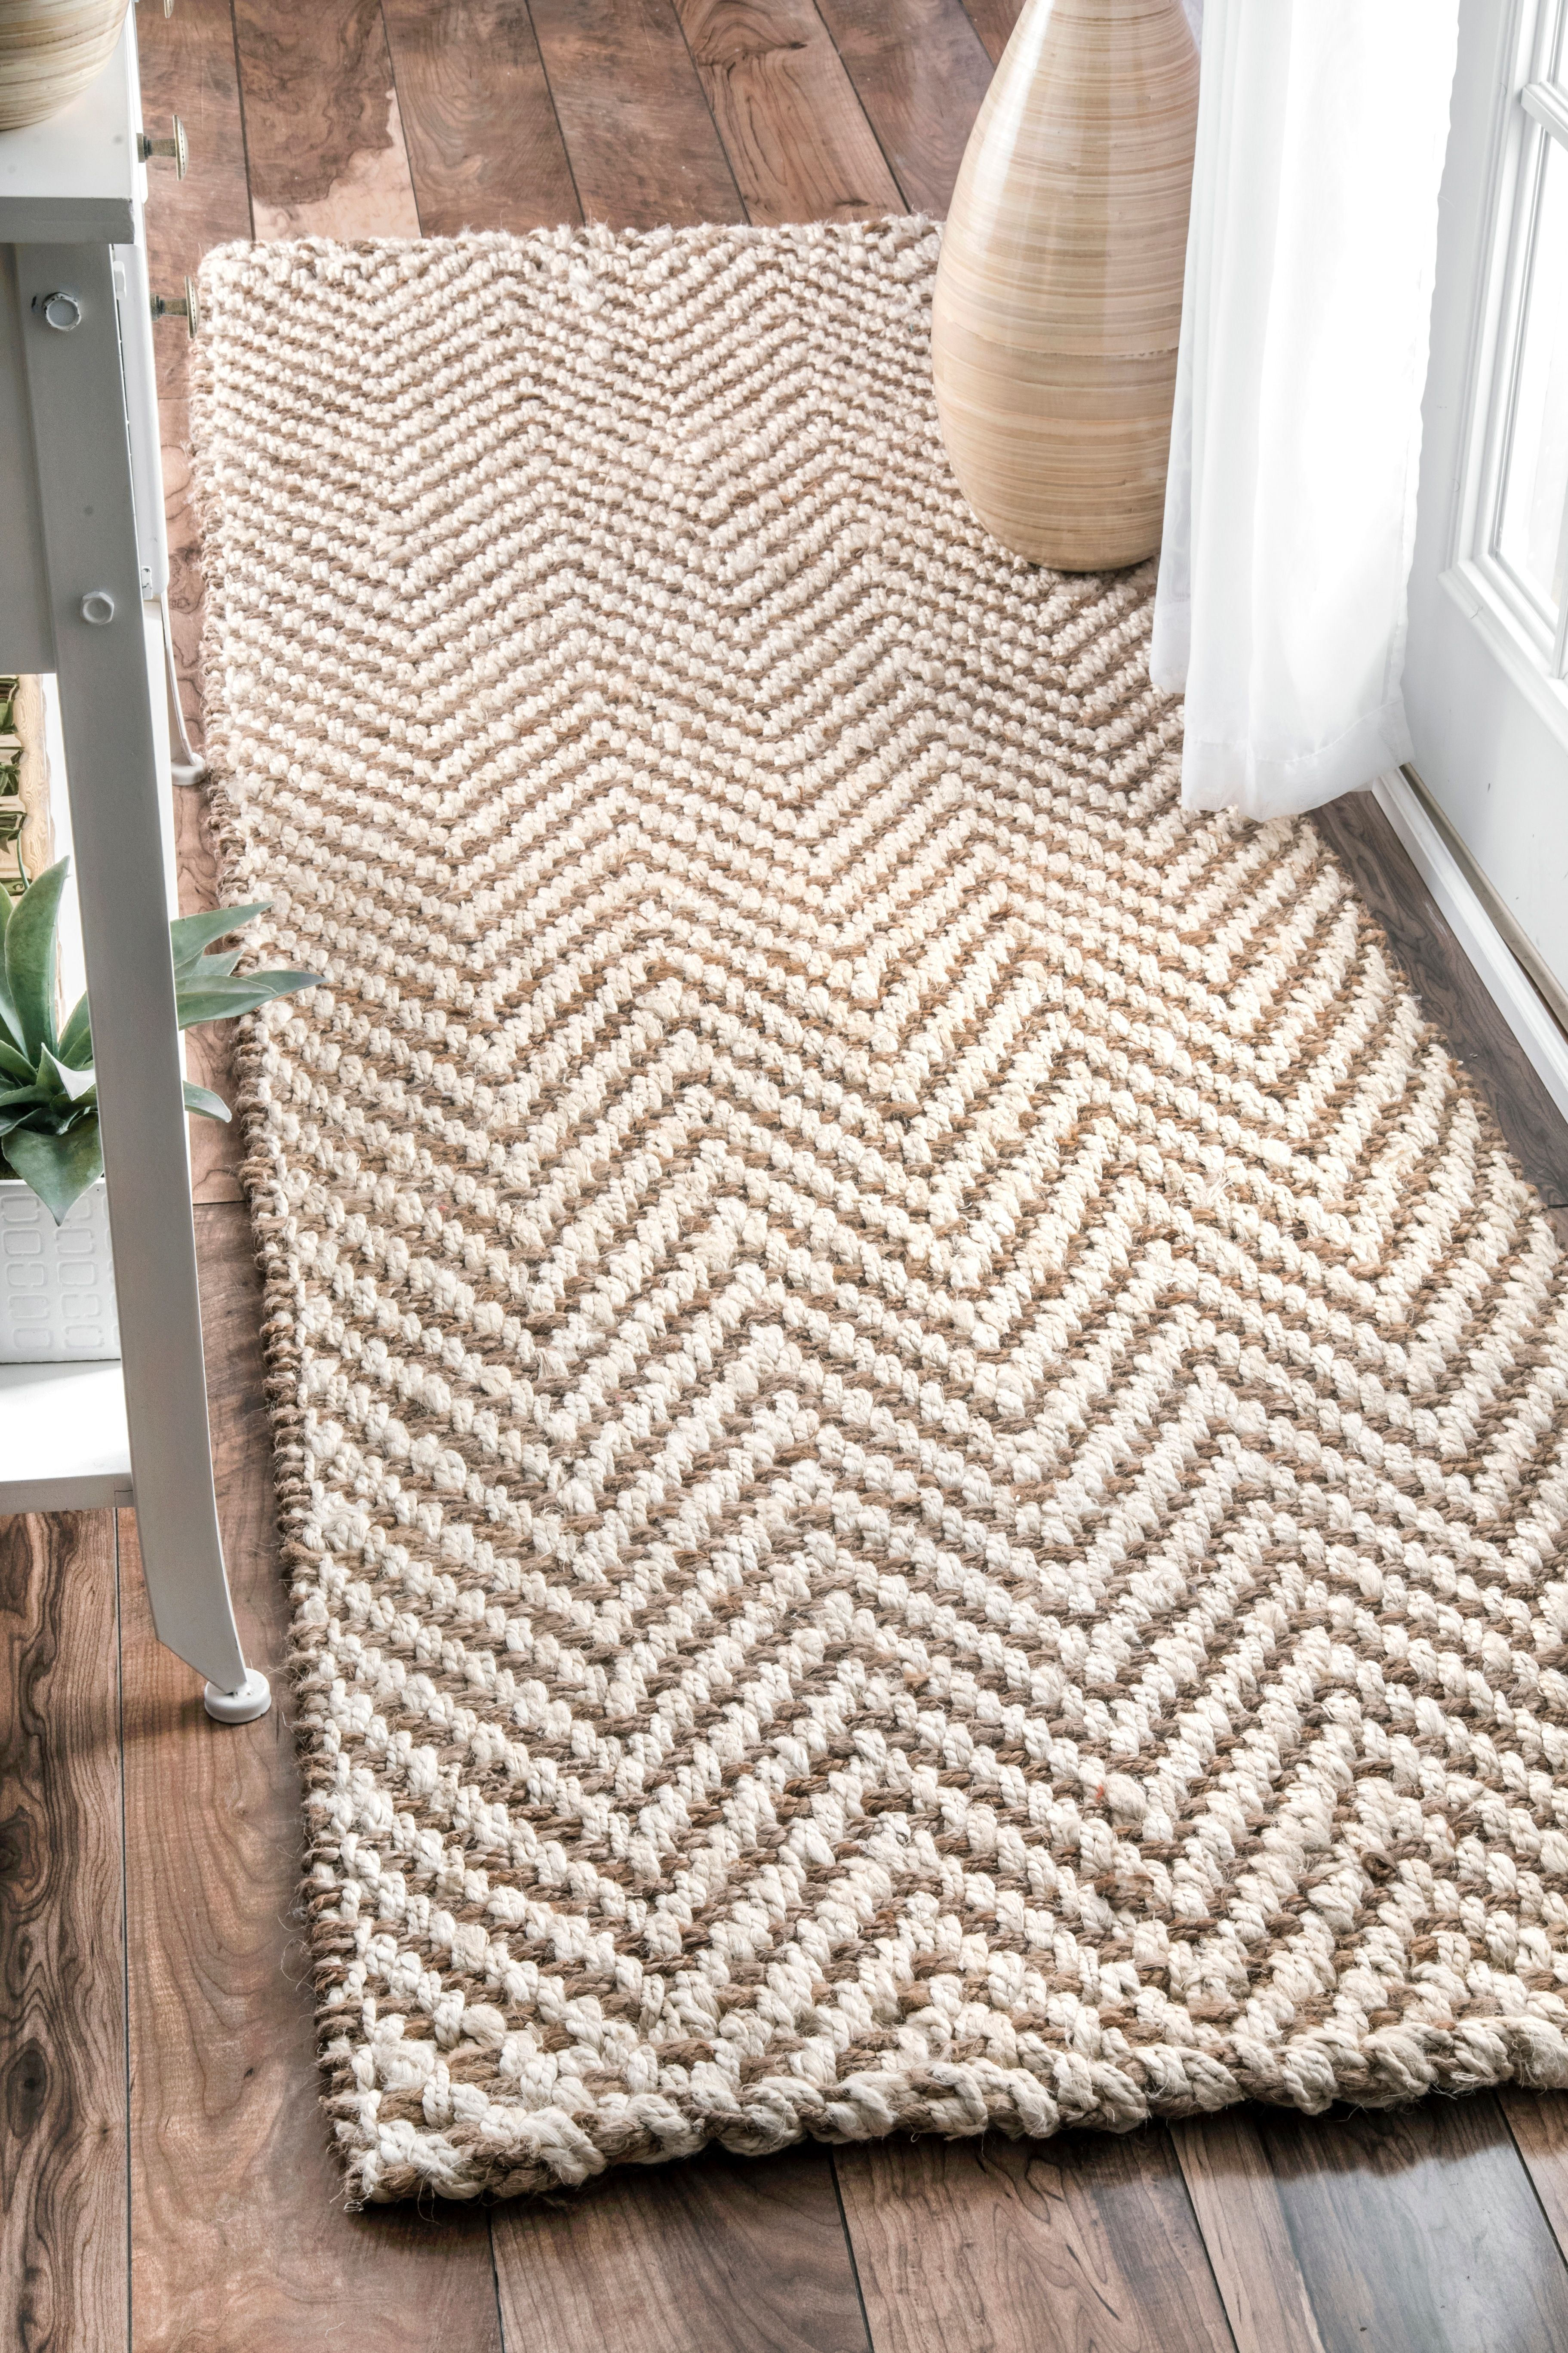 Get The Earthy Rustic Look With Amazingly Striped Patterned Handwoven And 100 Percent Natural Fiber Chevron Rugsjute